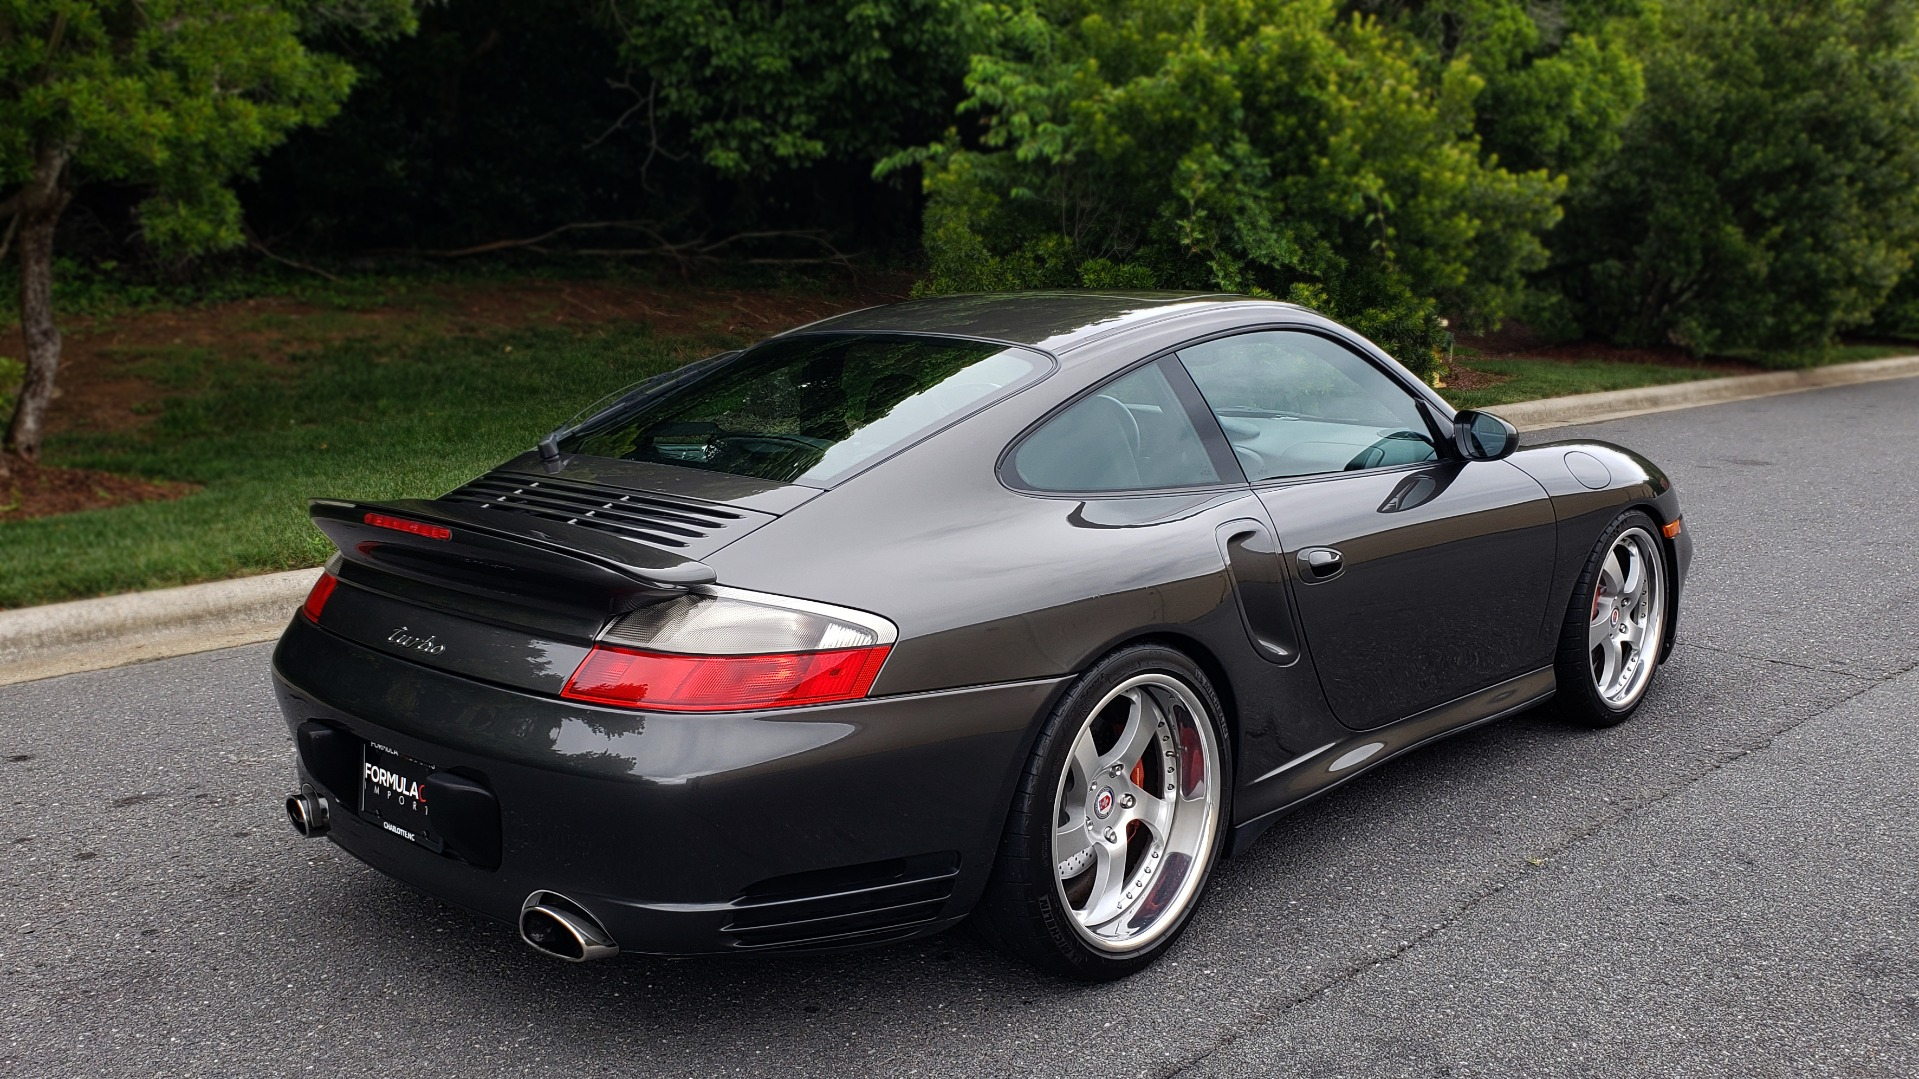 Used 2002 Porsche 911 CARRERA TURBO COUPE / 6-SPD MANUAL / PERF UPGRADES & CUSTOM TUNE for sale Sold at Formula Imports in Charlotte NC 28227 11